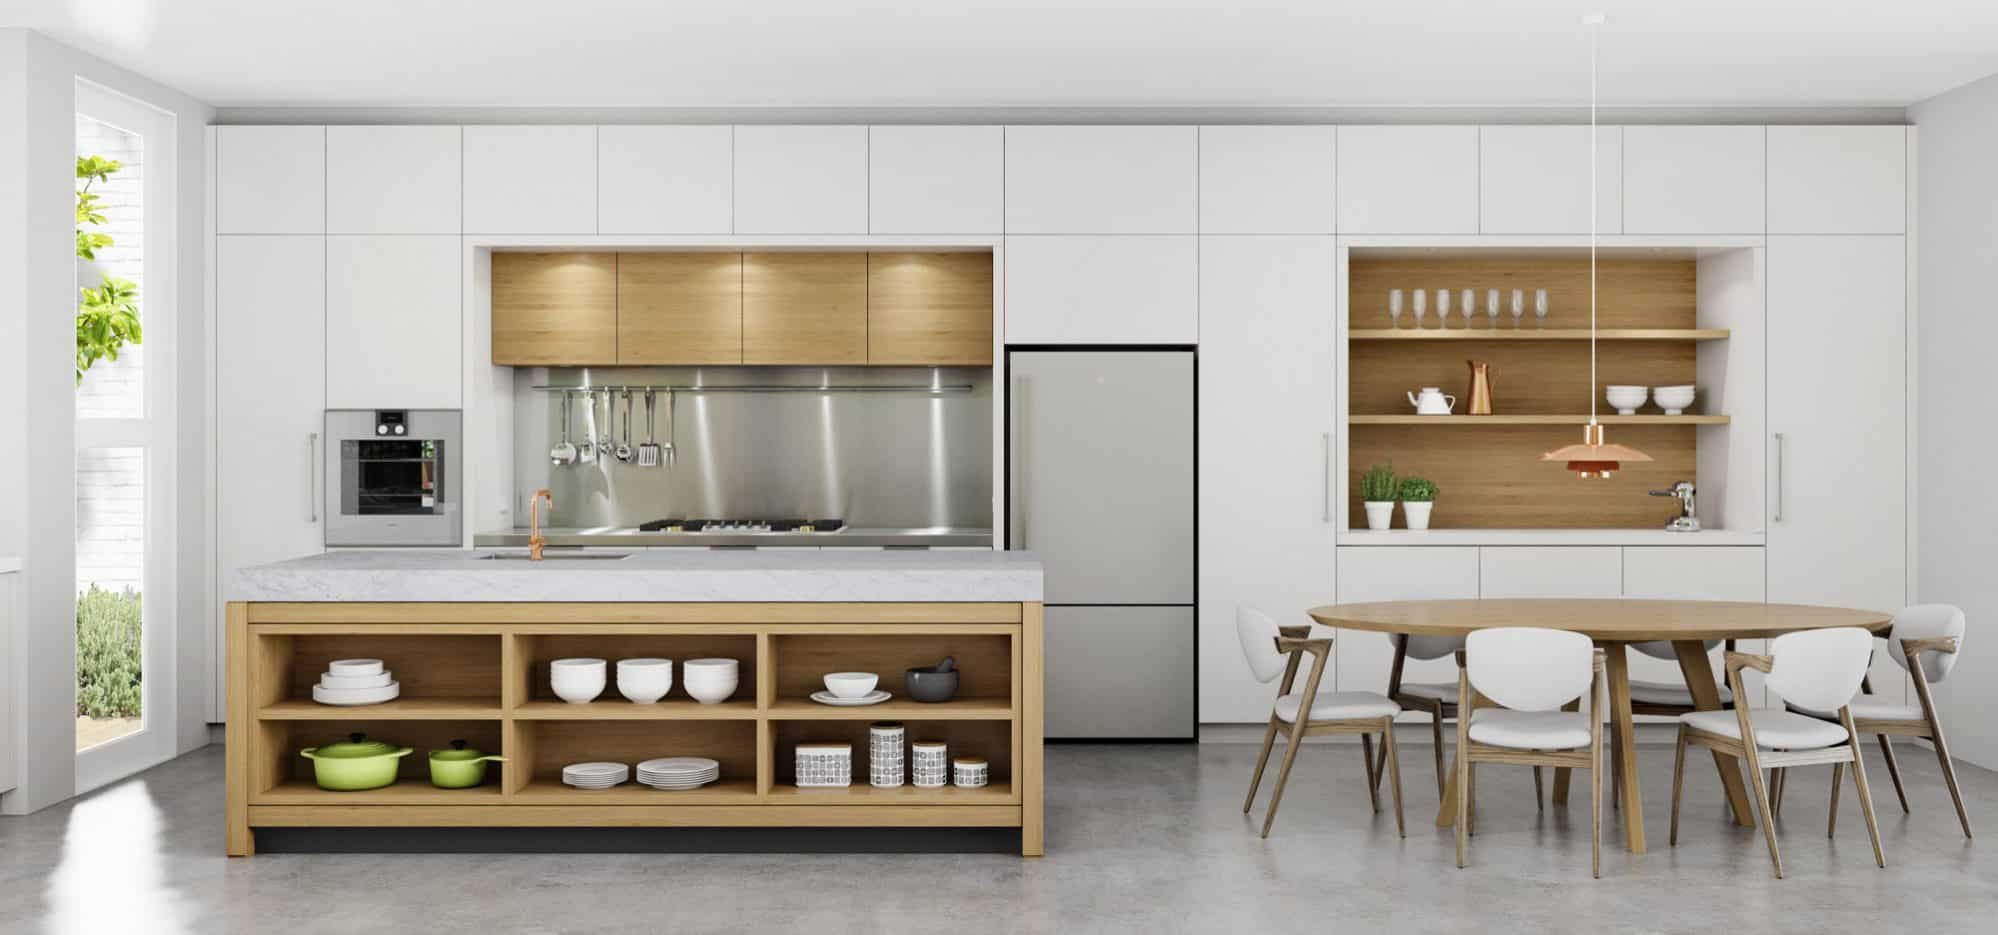 Kitchen with table style island in American Oak